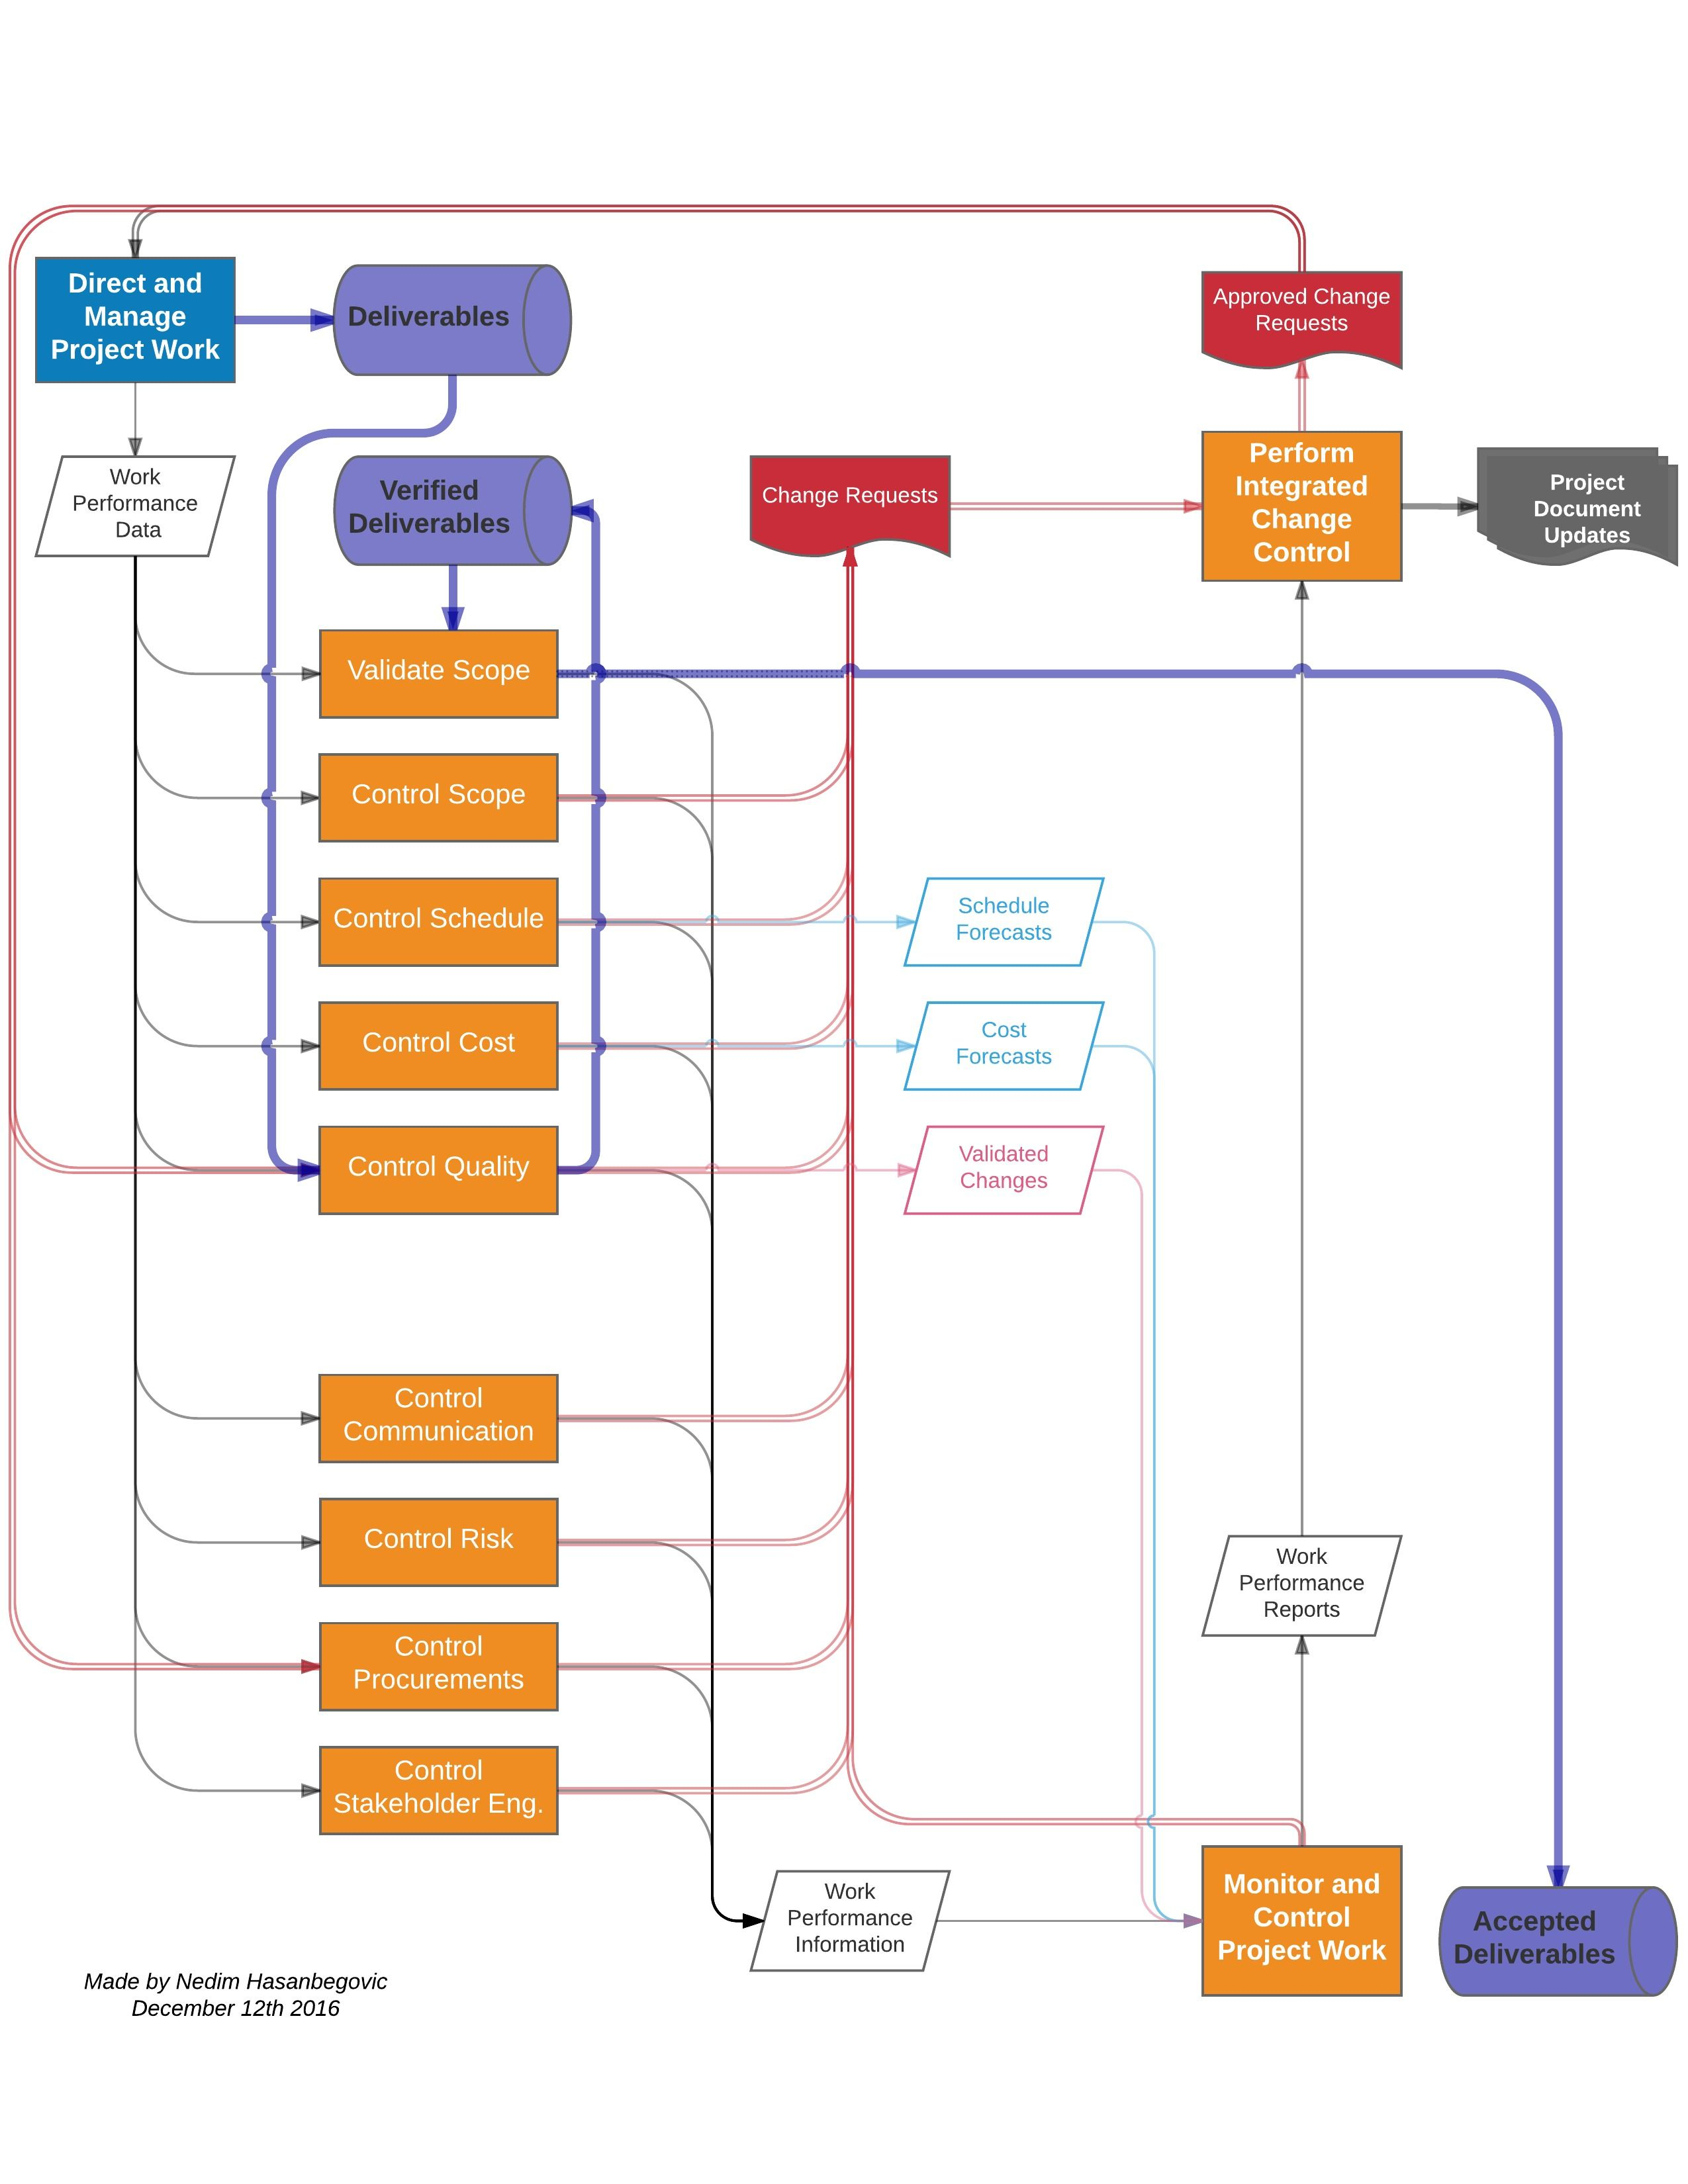 PMP Flowchart for Deliverables, Change Requests and Work Performance ...